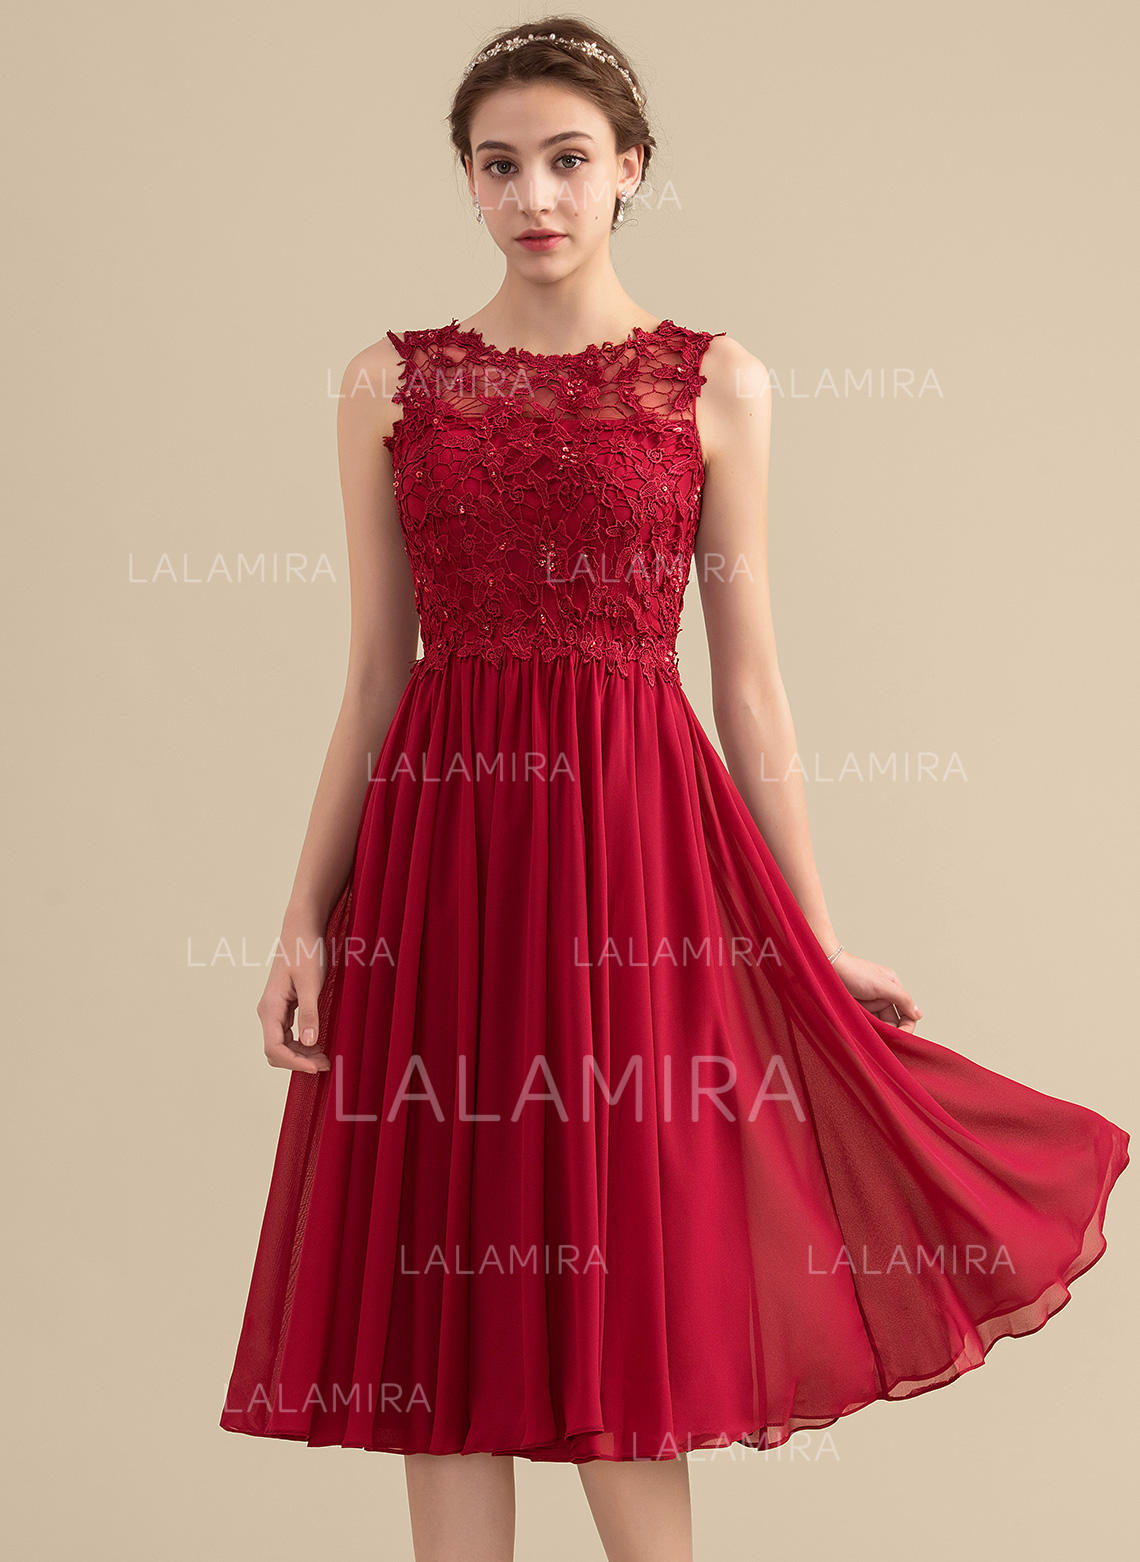 6b0330af2d69 A-Line/Princess Scoop Neck Knee-Length Chiffon Lace Cocktail Dress With  Beading. Loading zoom